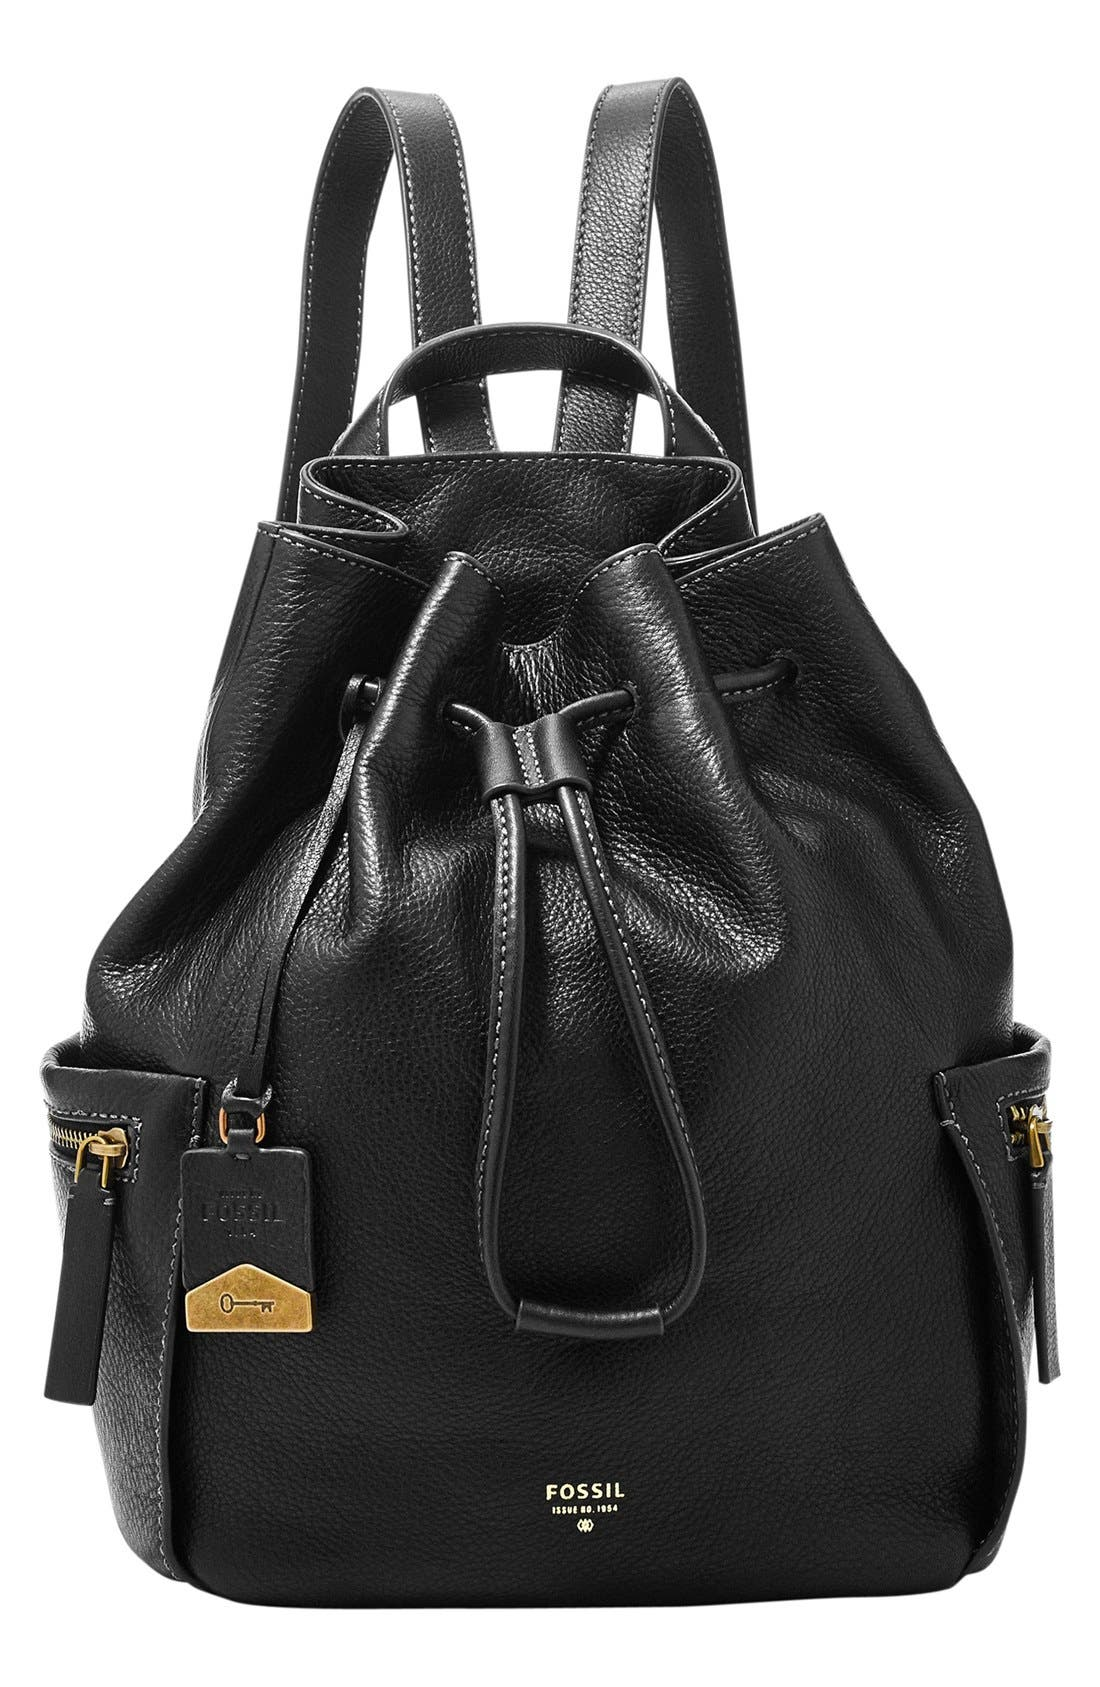 Alternate Image 1 Selected - Fossil 'Vickery - Large' Drawstring Leather Backpack